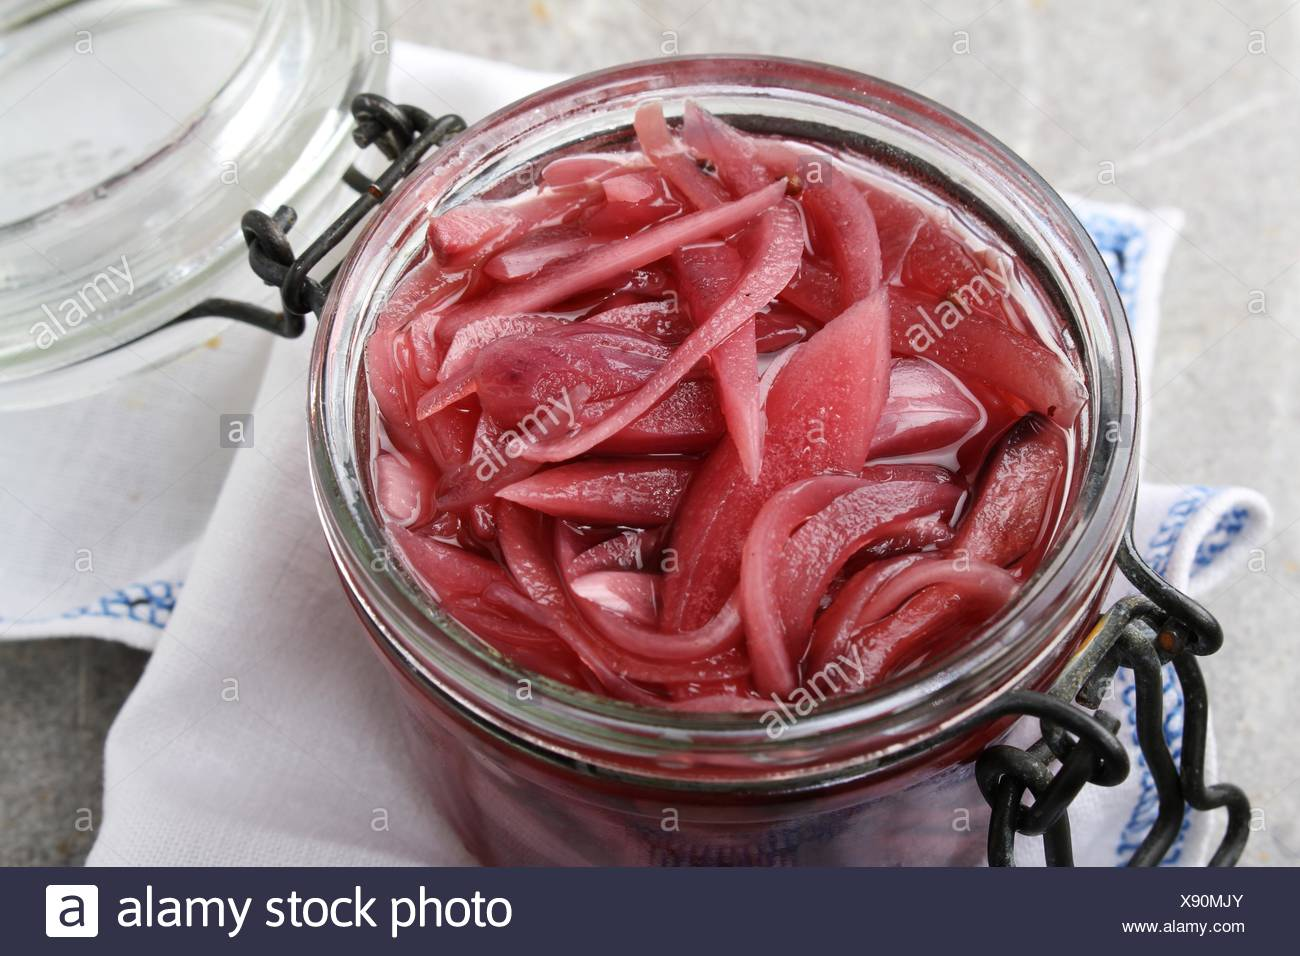 pickled red onion Stock Photo: 280914003 - Alamy